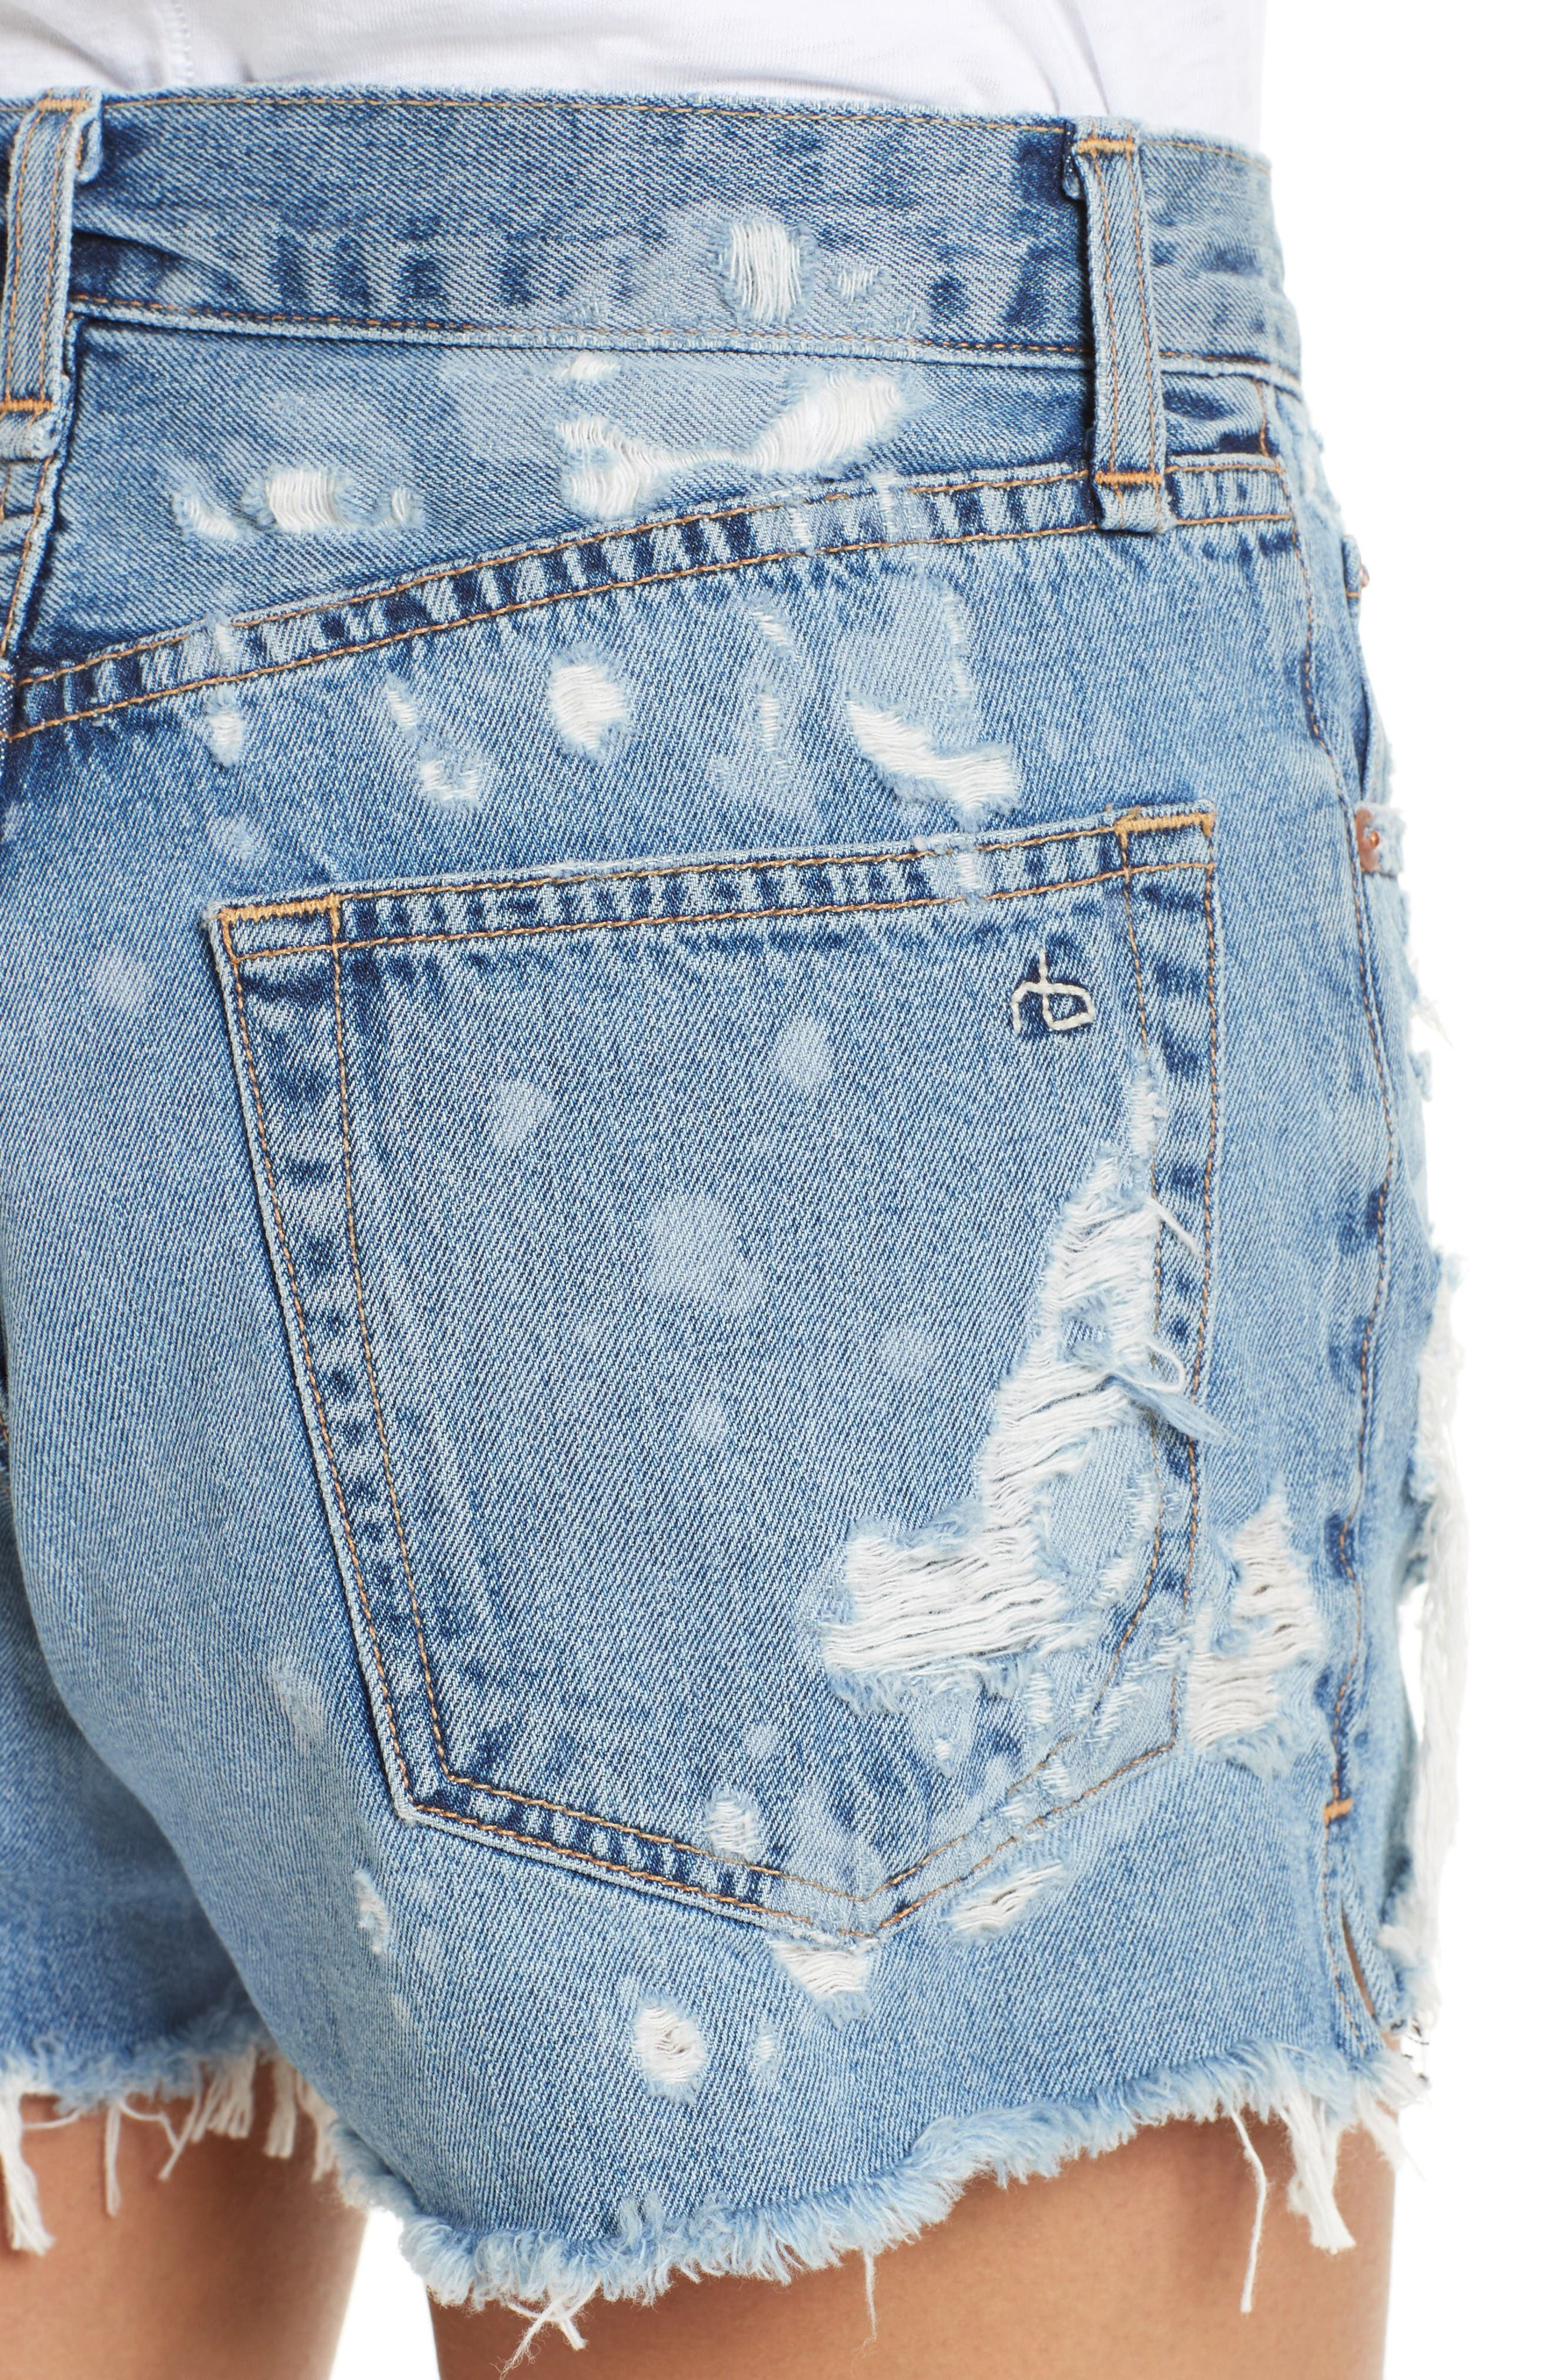 Justine High Waist Cutoff Denim Shorts,                             Alternate thumbnail 4, color,                             Brokenland